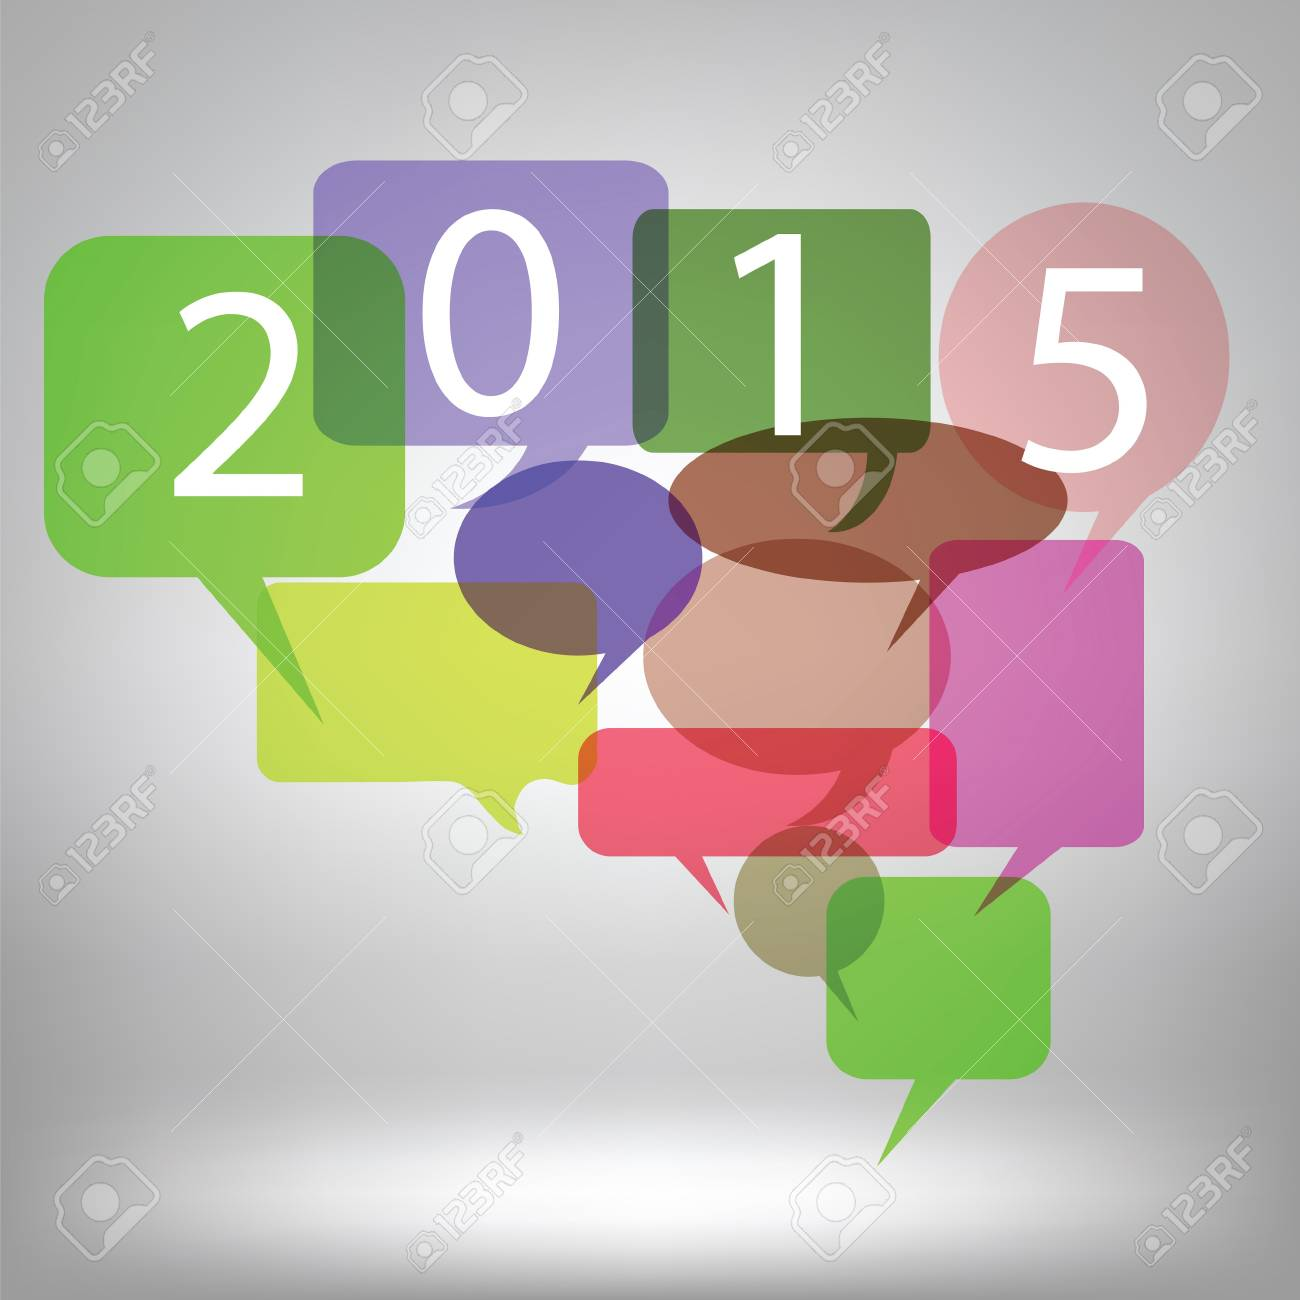 Colorful Illustration With New Year Speech Bubbles Background     colorful illustration with new year speech bubbles background on grey  background Stock Illustration   34539805